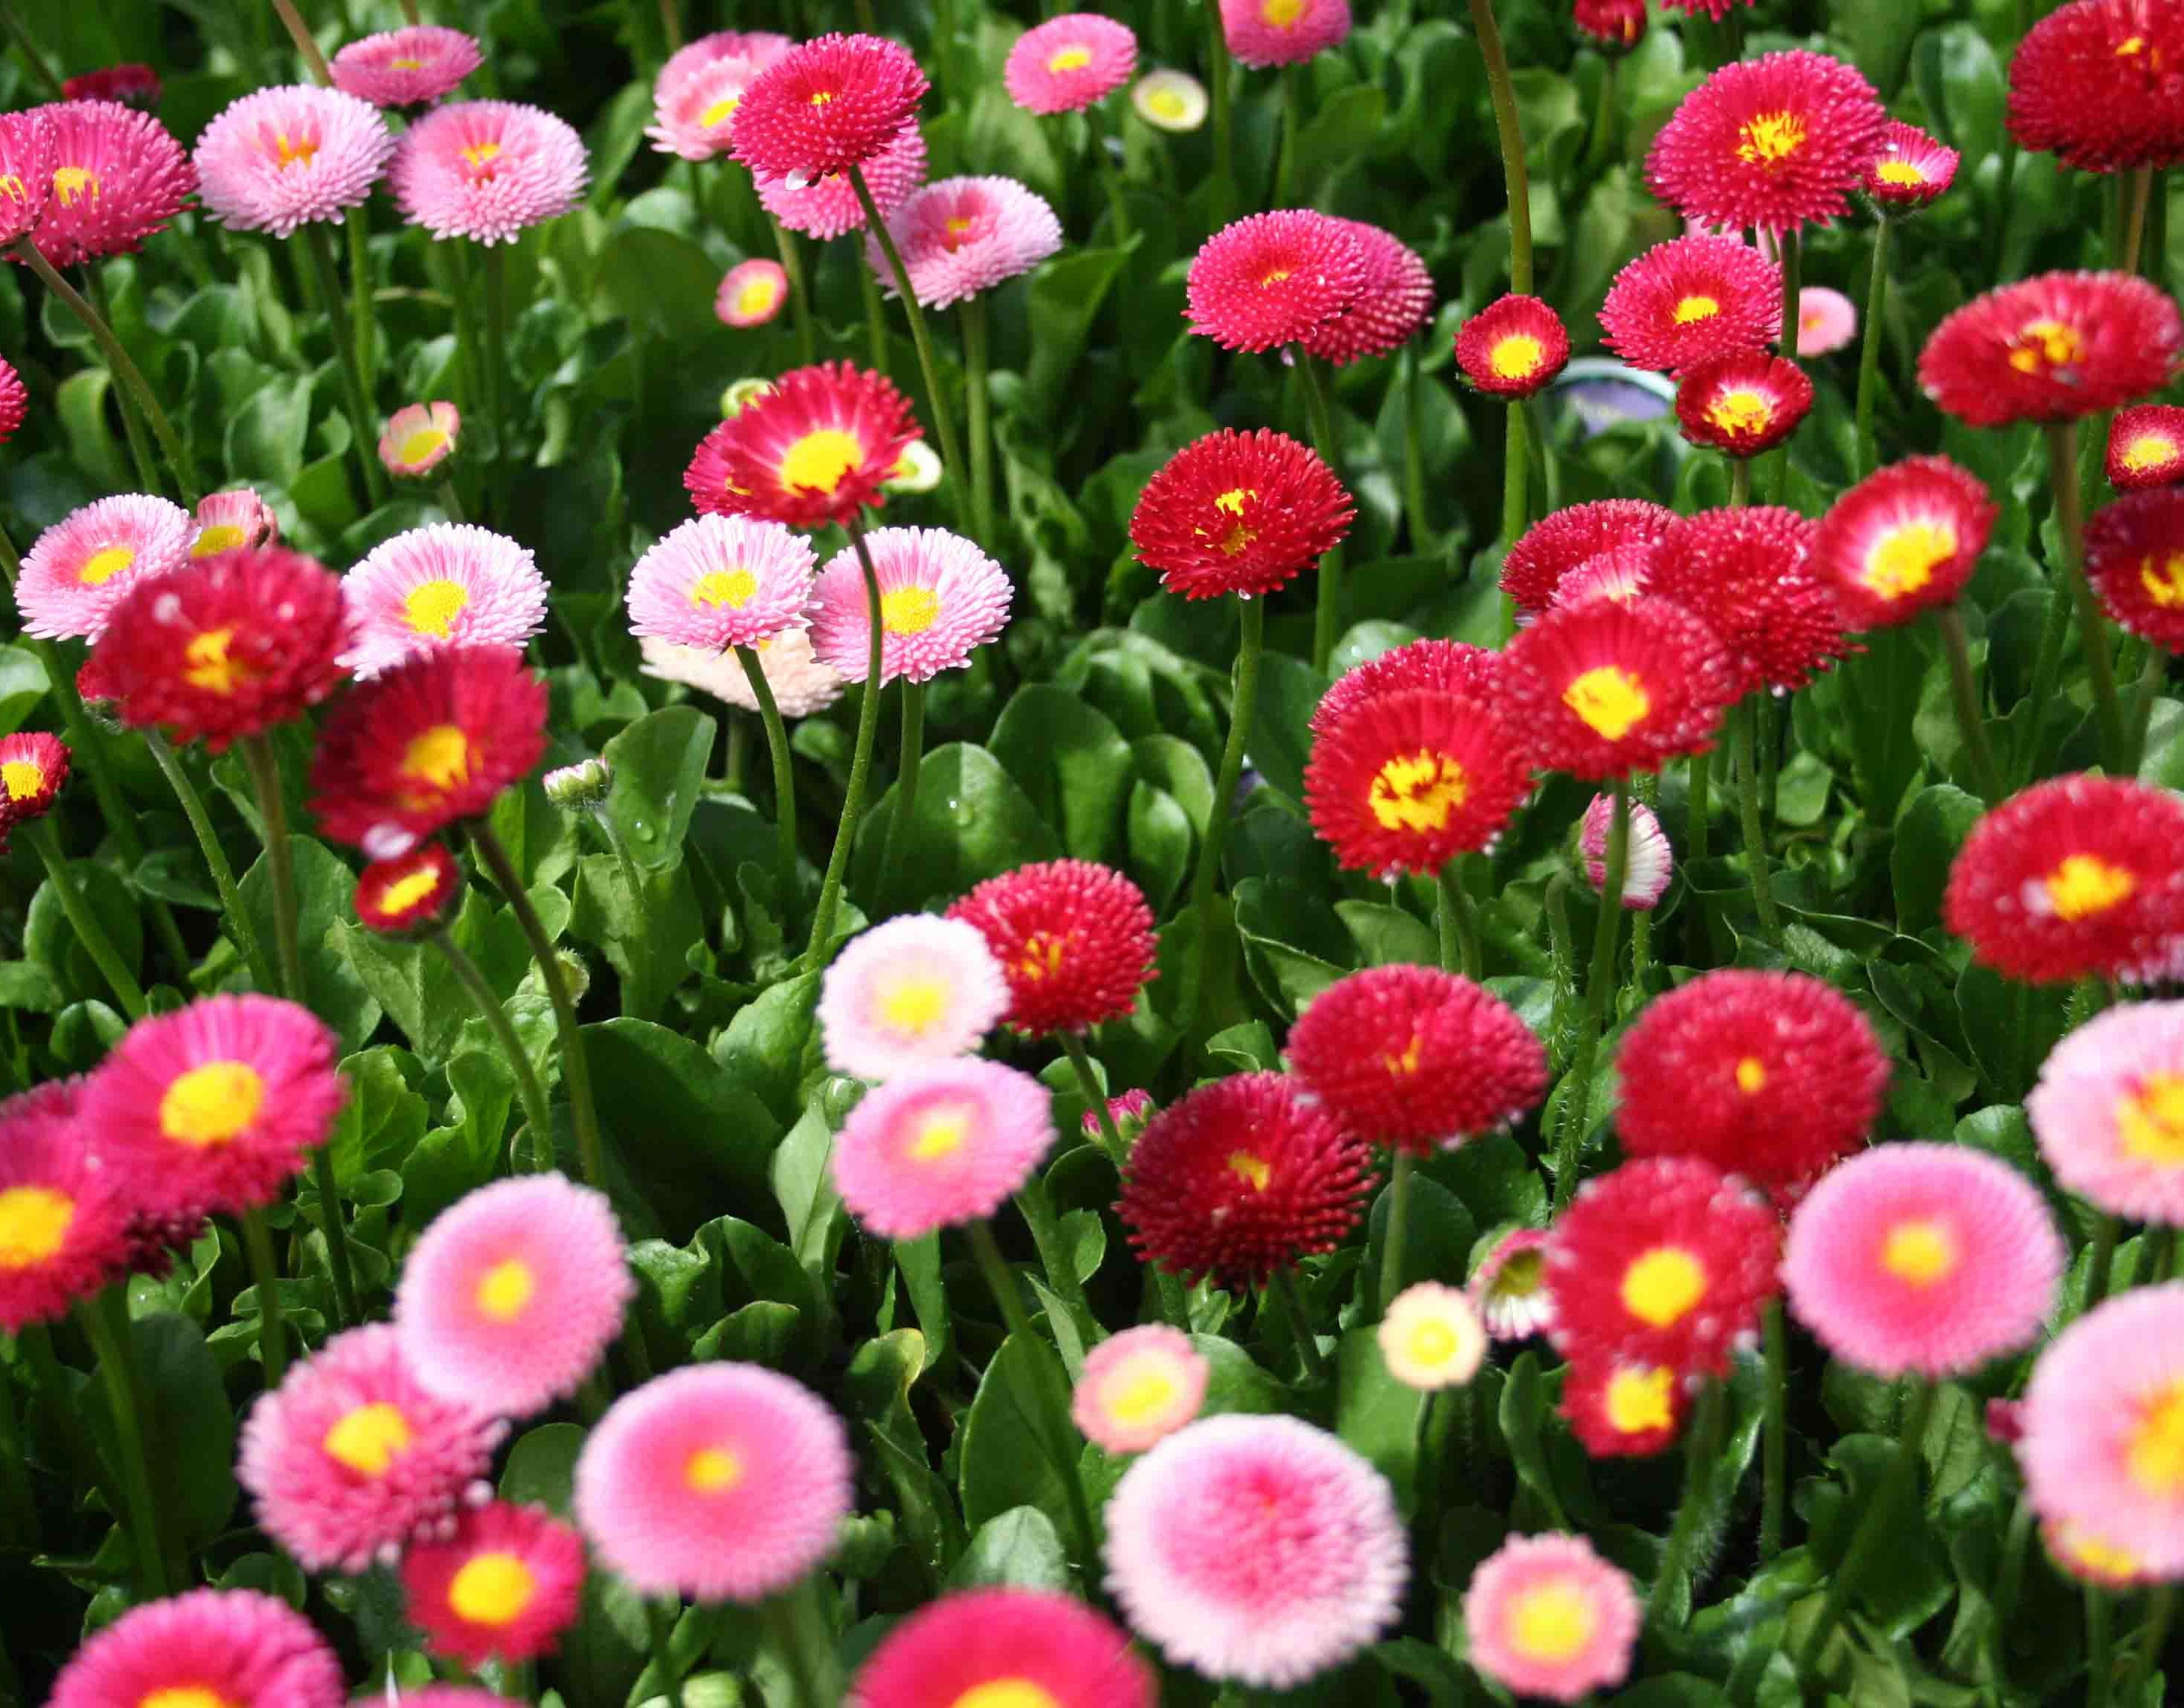 Buy Premium Quality Daisy Double Mixed Seeds At Allthatgrows